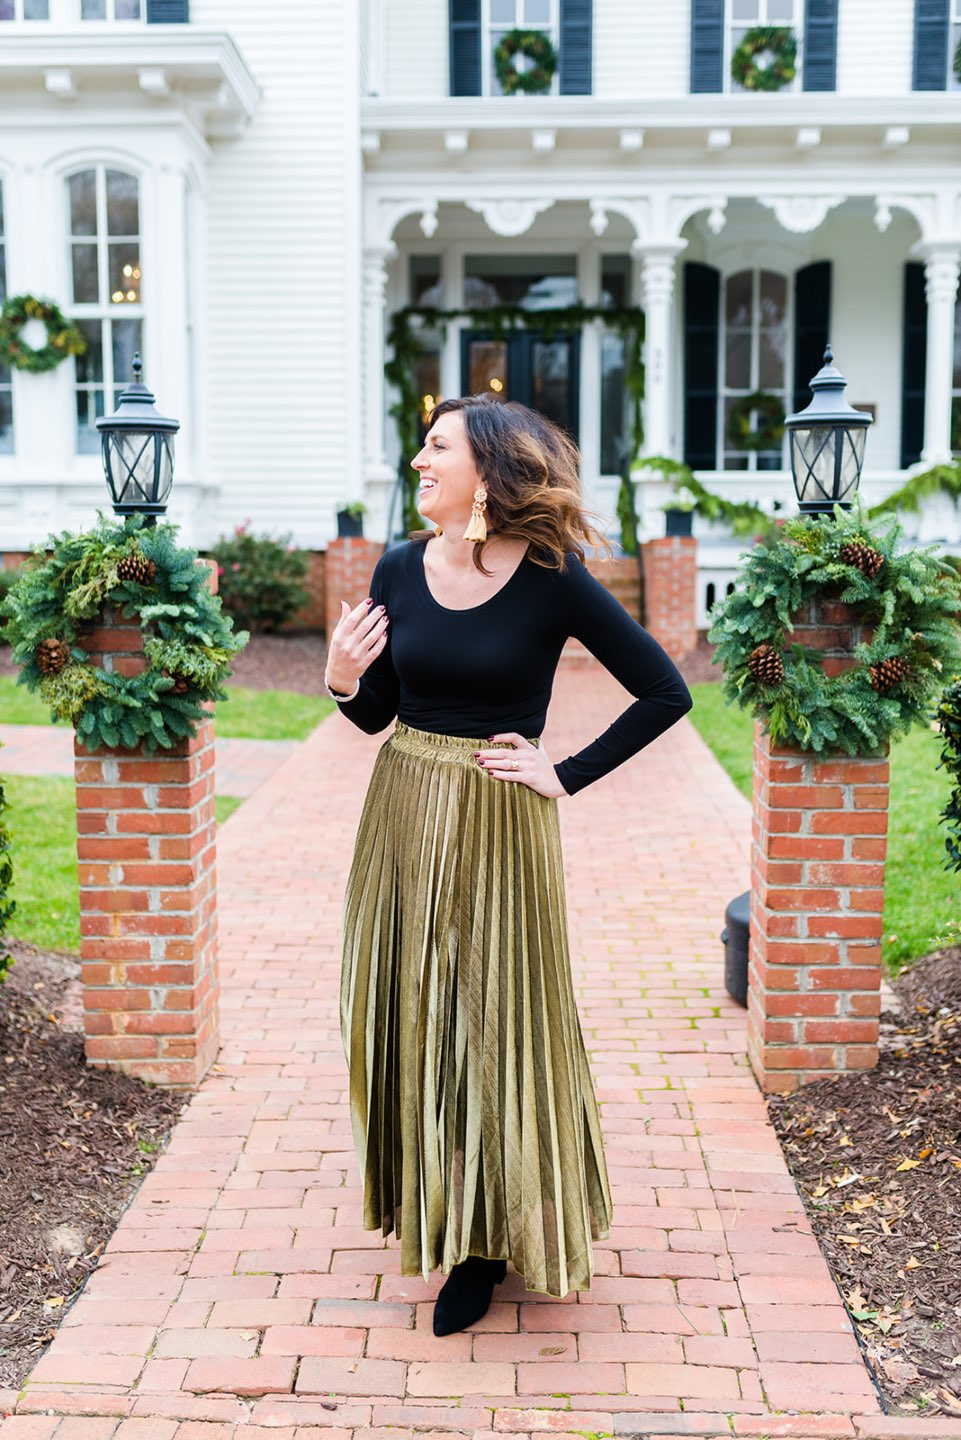 10 Most Popular Outfits from 2018 - I'm Fixin' To - @mbg0112 | Top 10 Most Popular Outfits featured by top North Carolina fashion blog: I'm Fixin' To